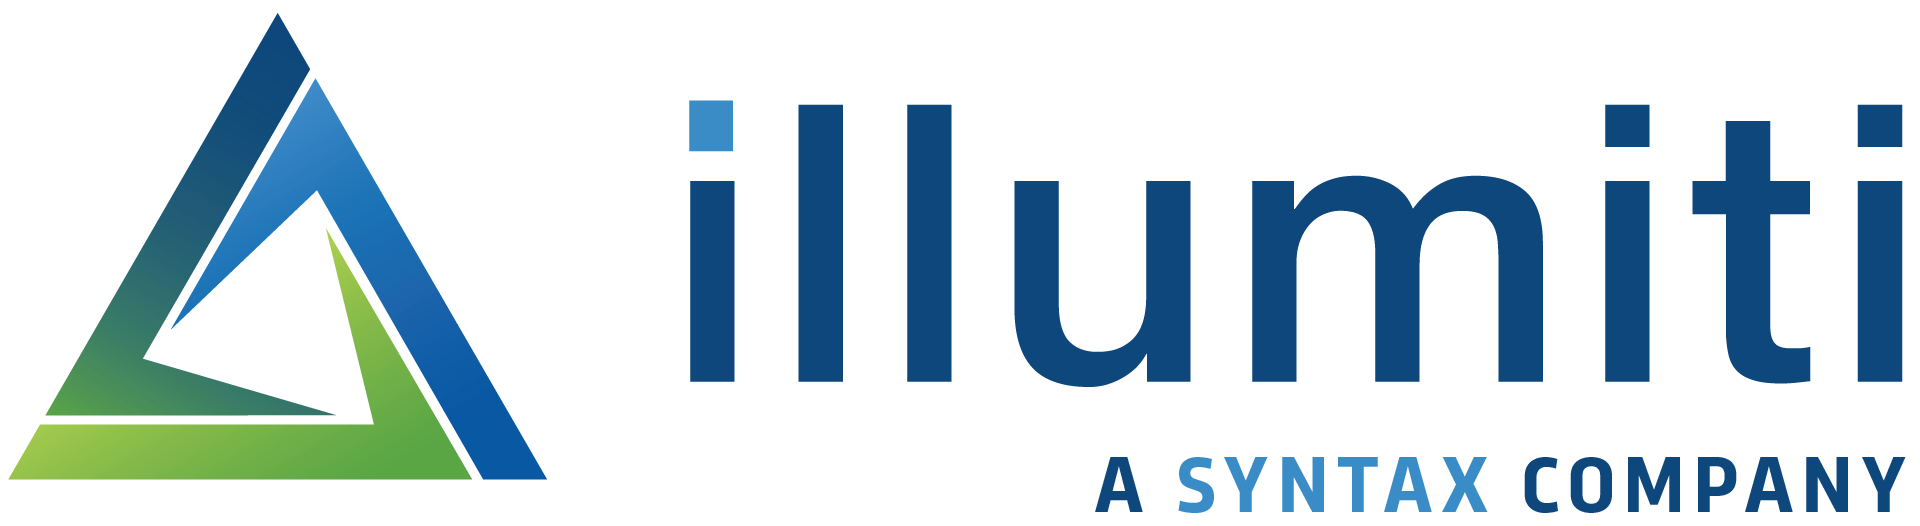 Syntax Acquires Illumiti to Expand Global SAP Functional Practice in North America